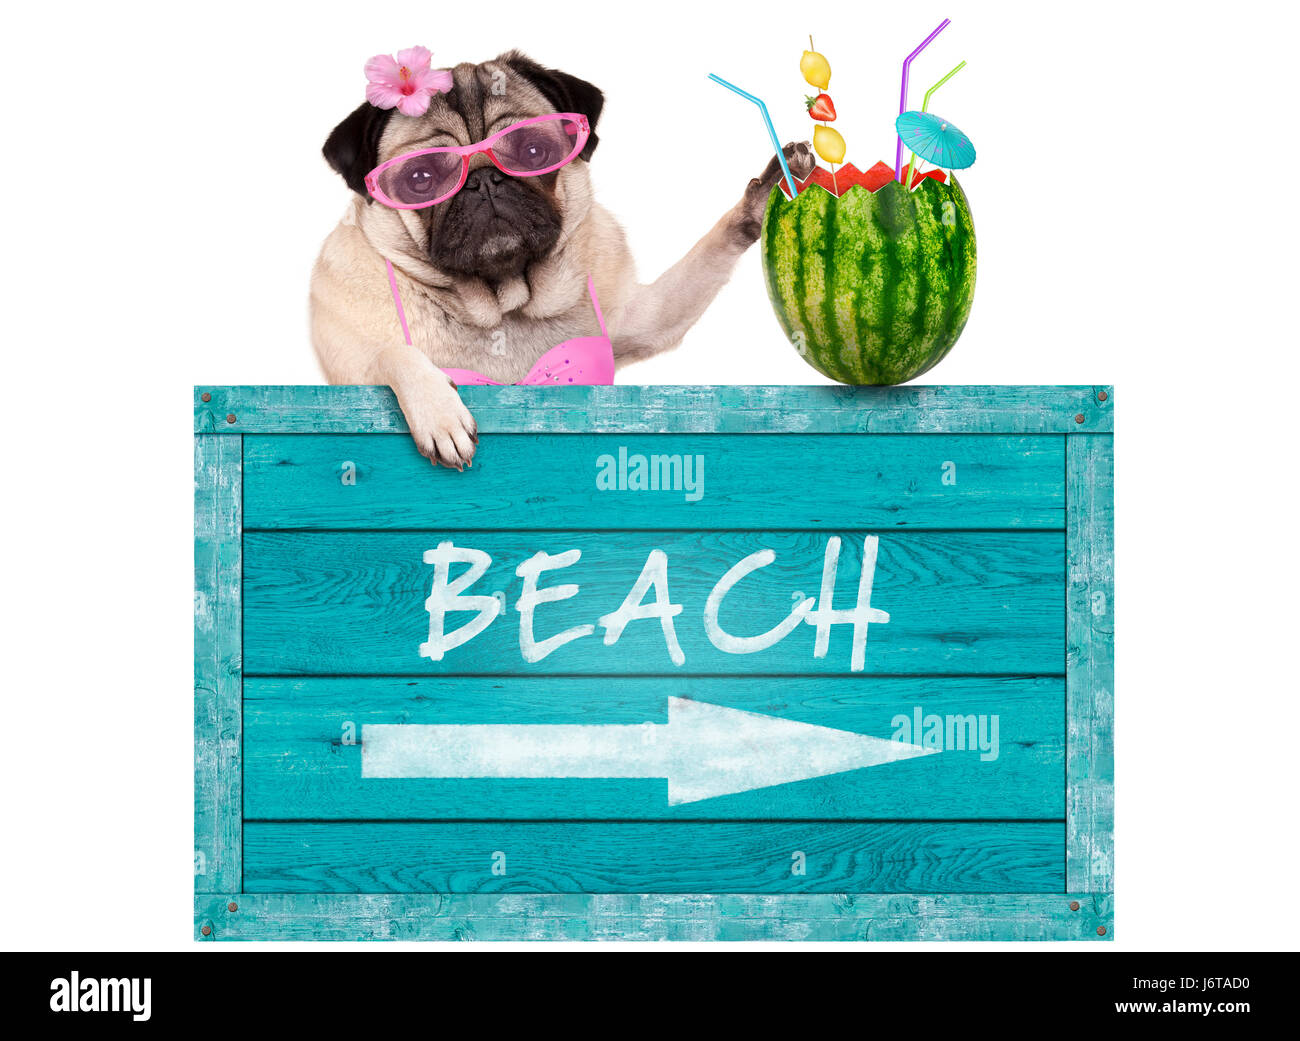 bikini babe pug dog with blue vintage wooden beach sign and watermelon cocktail, isolated on white background Stock Photo